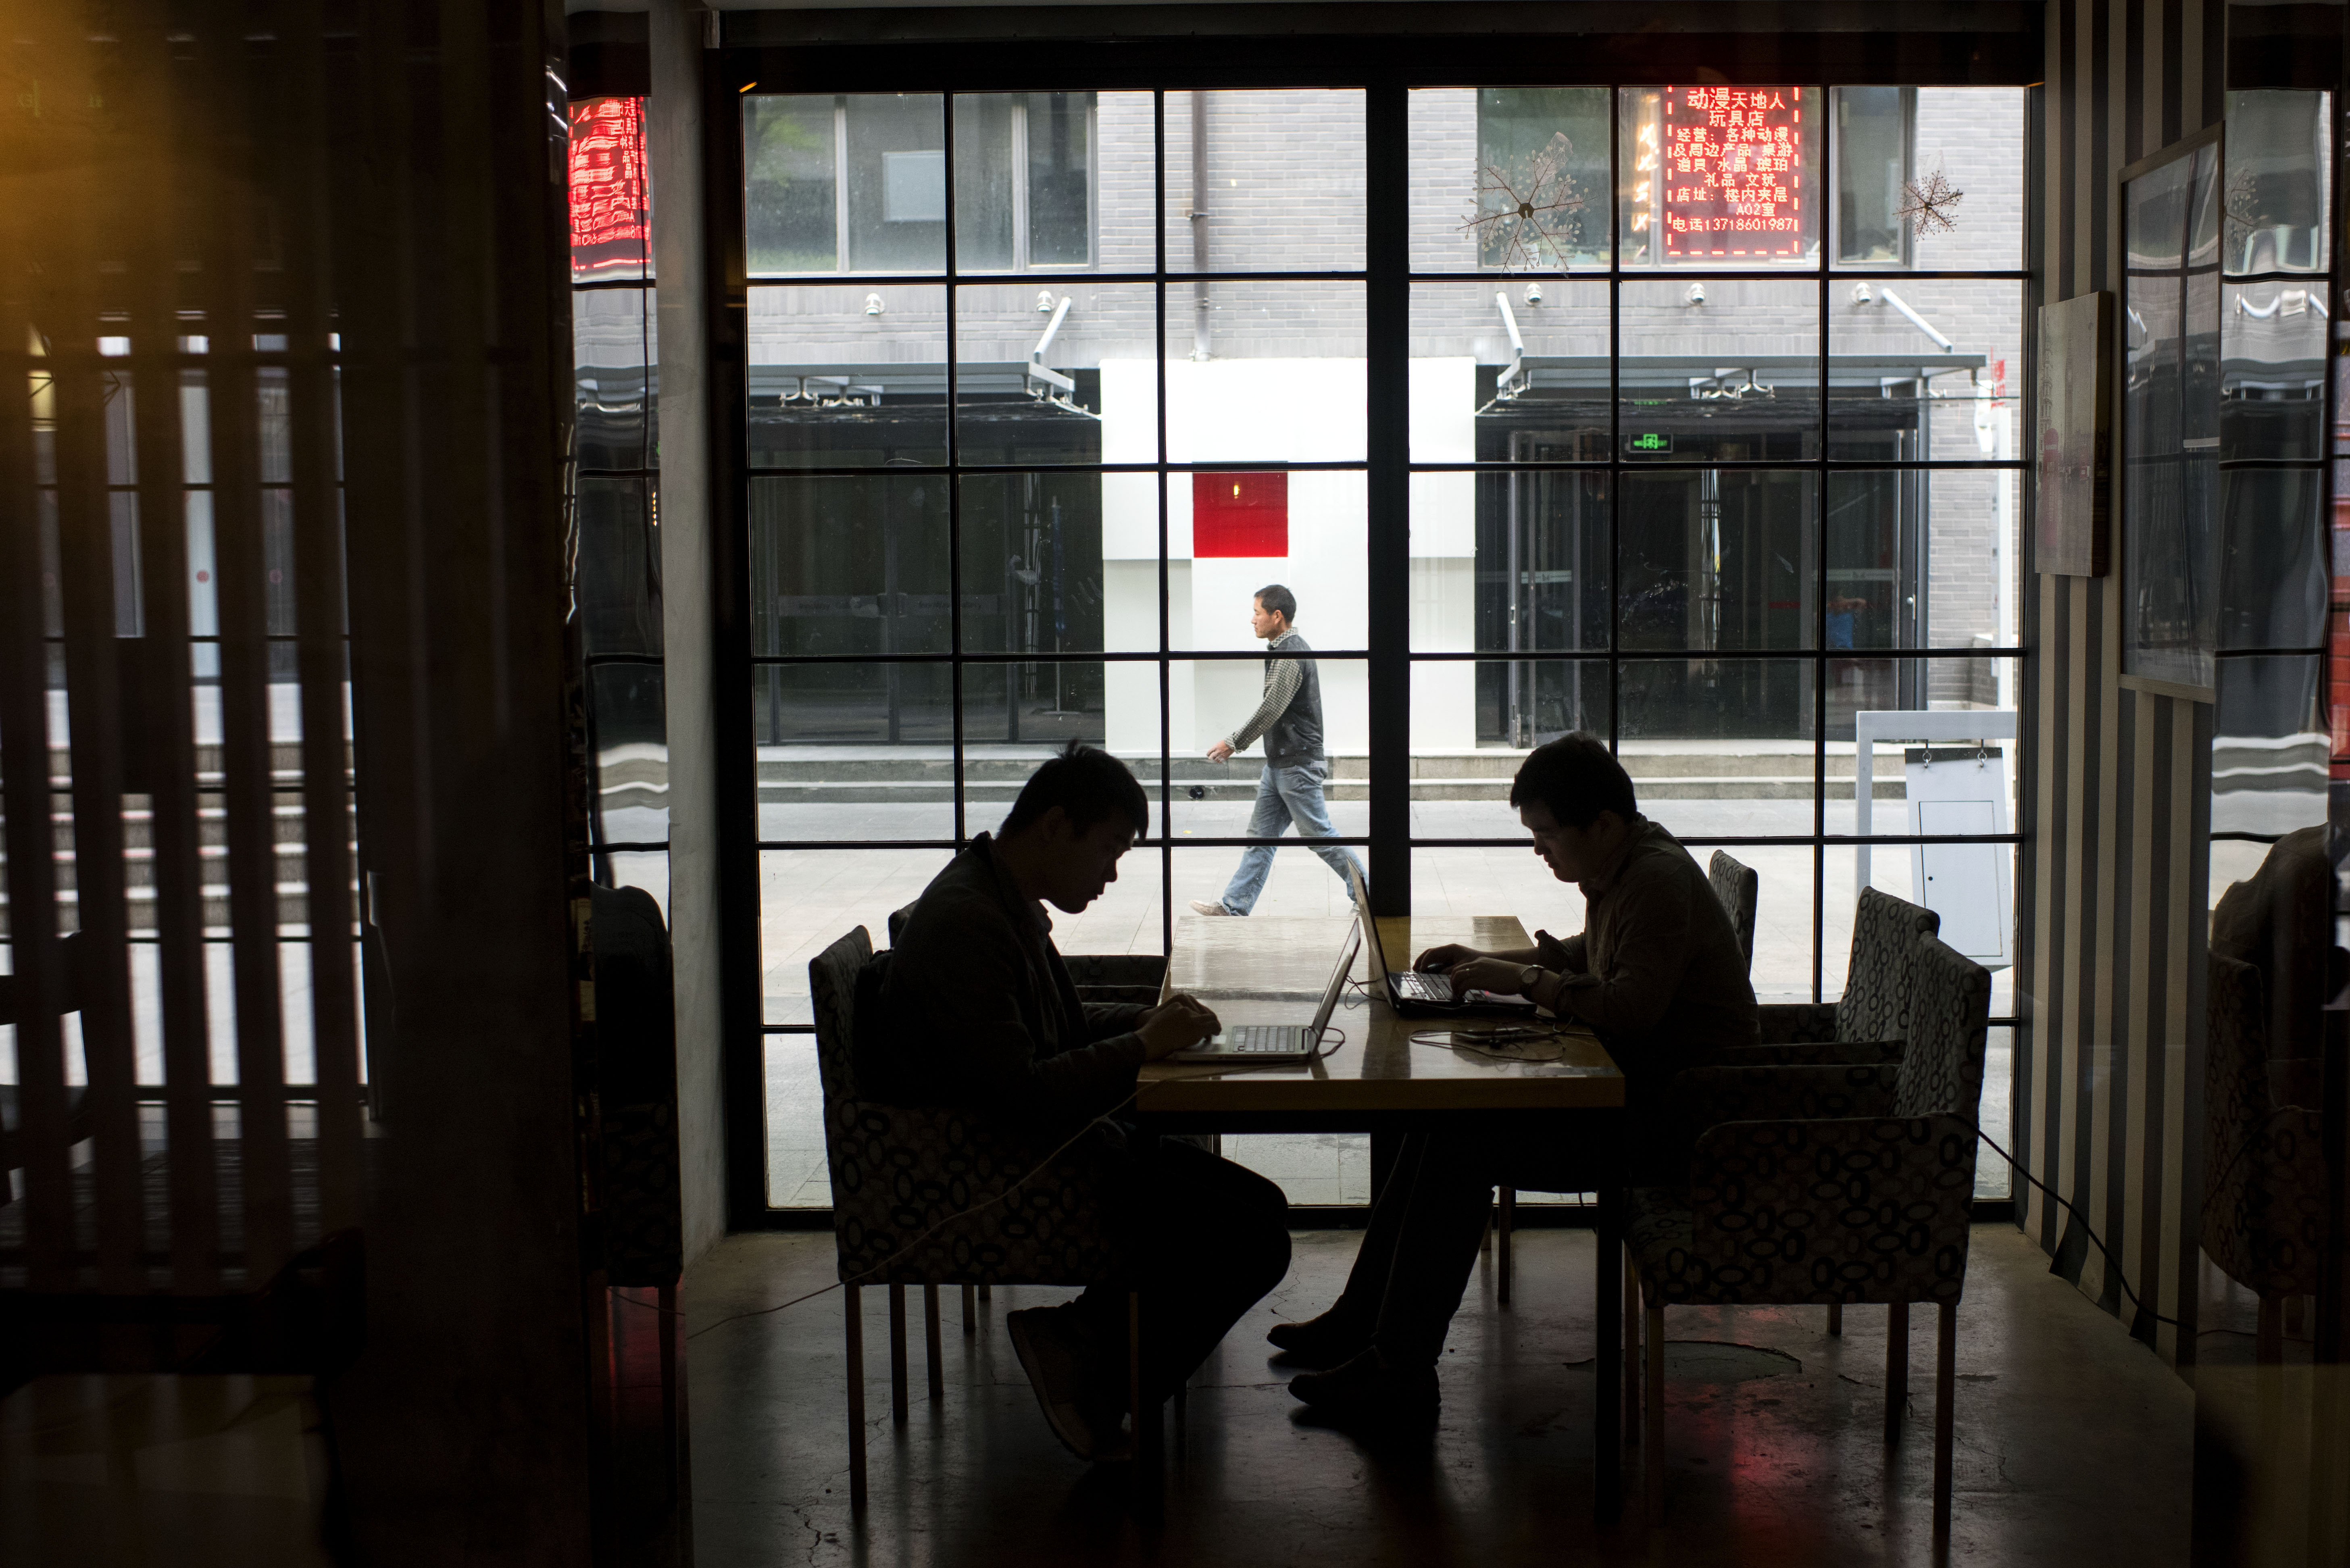 Internet startup employees work on their computers at 3W Coffee in Beijing earlier this year. Mobile device usage and e-commerce are in wide use in China, and now the Communist Party wants to compile a